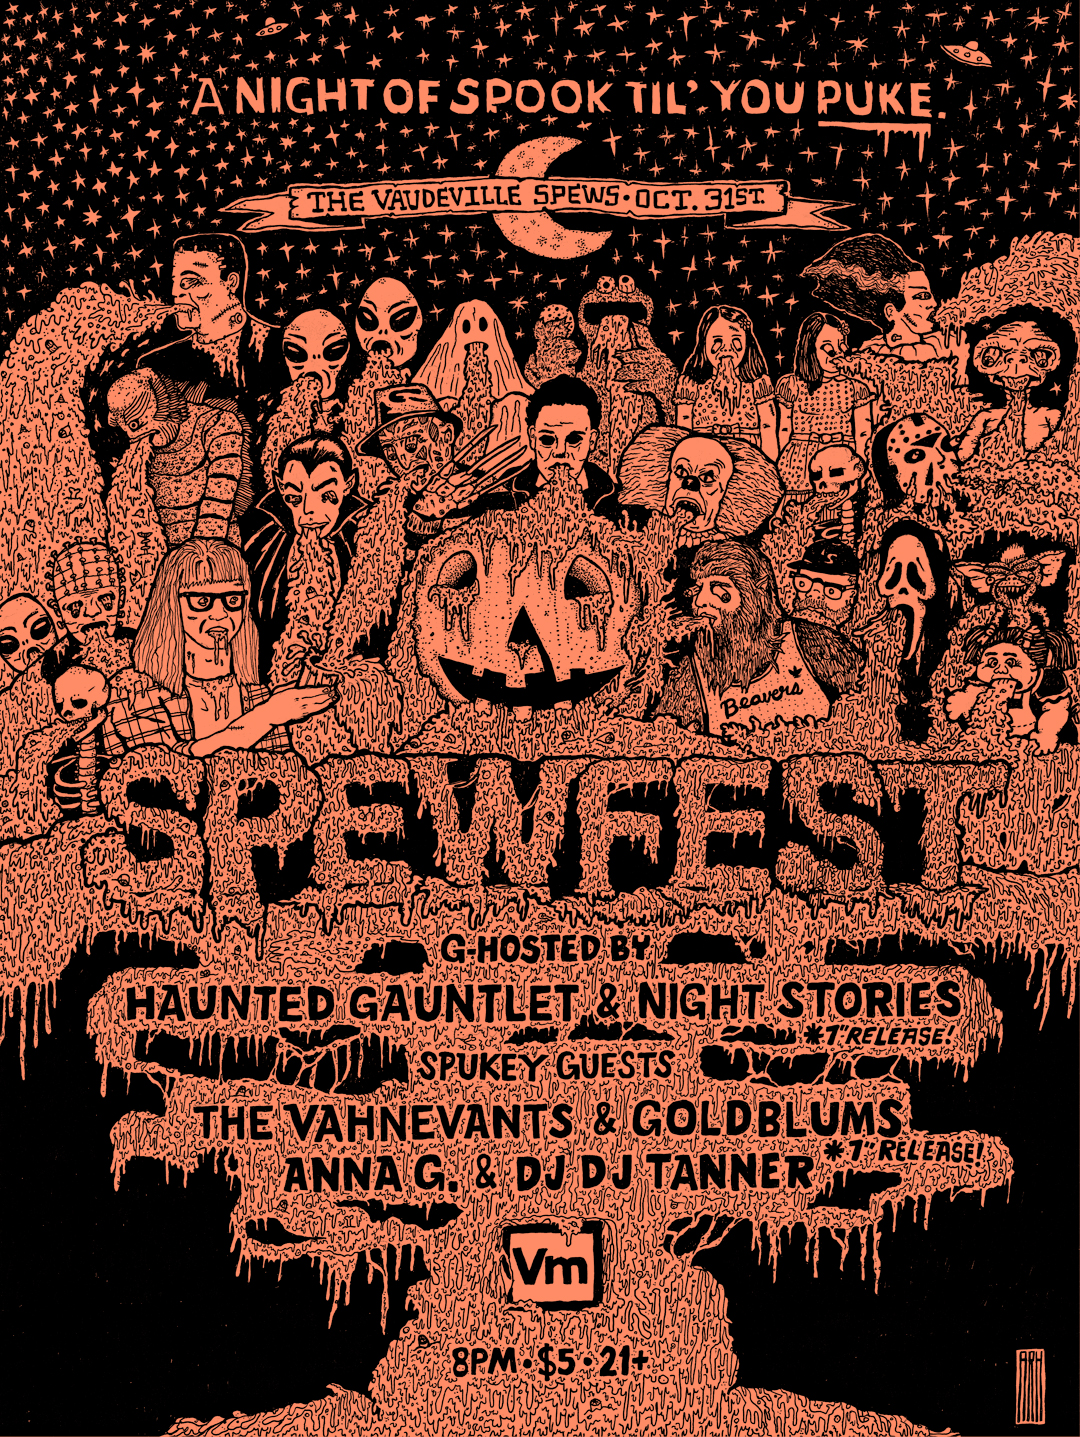 Spewfest_web_72dpi_15'_puke_orange.jpg